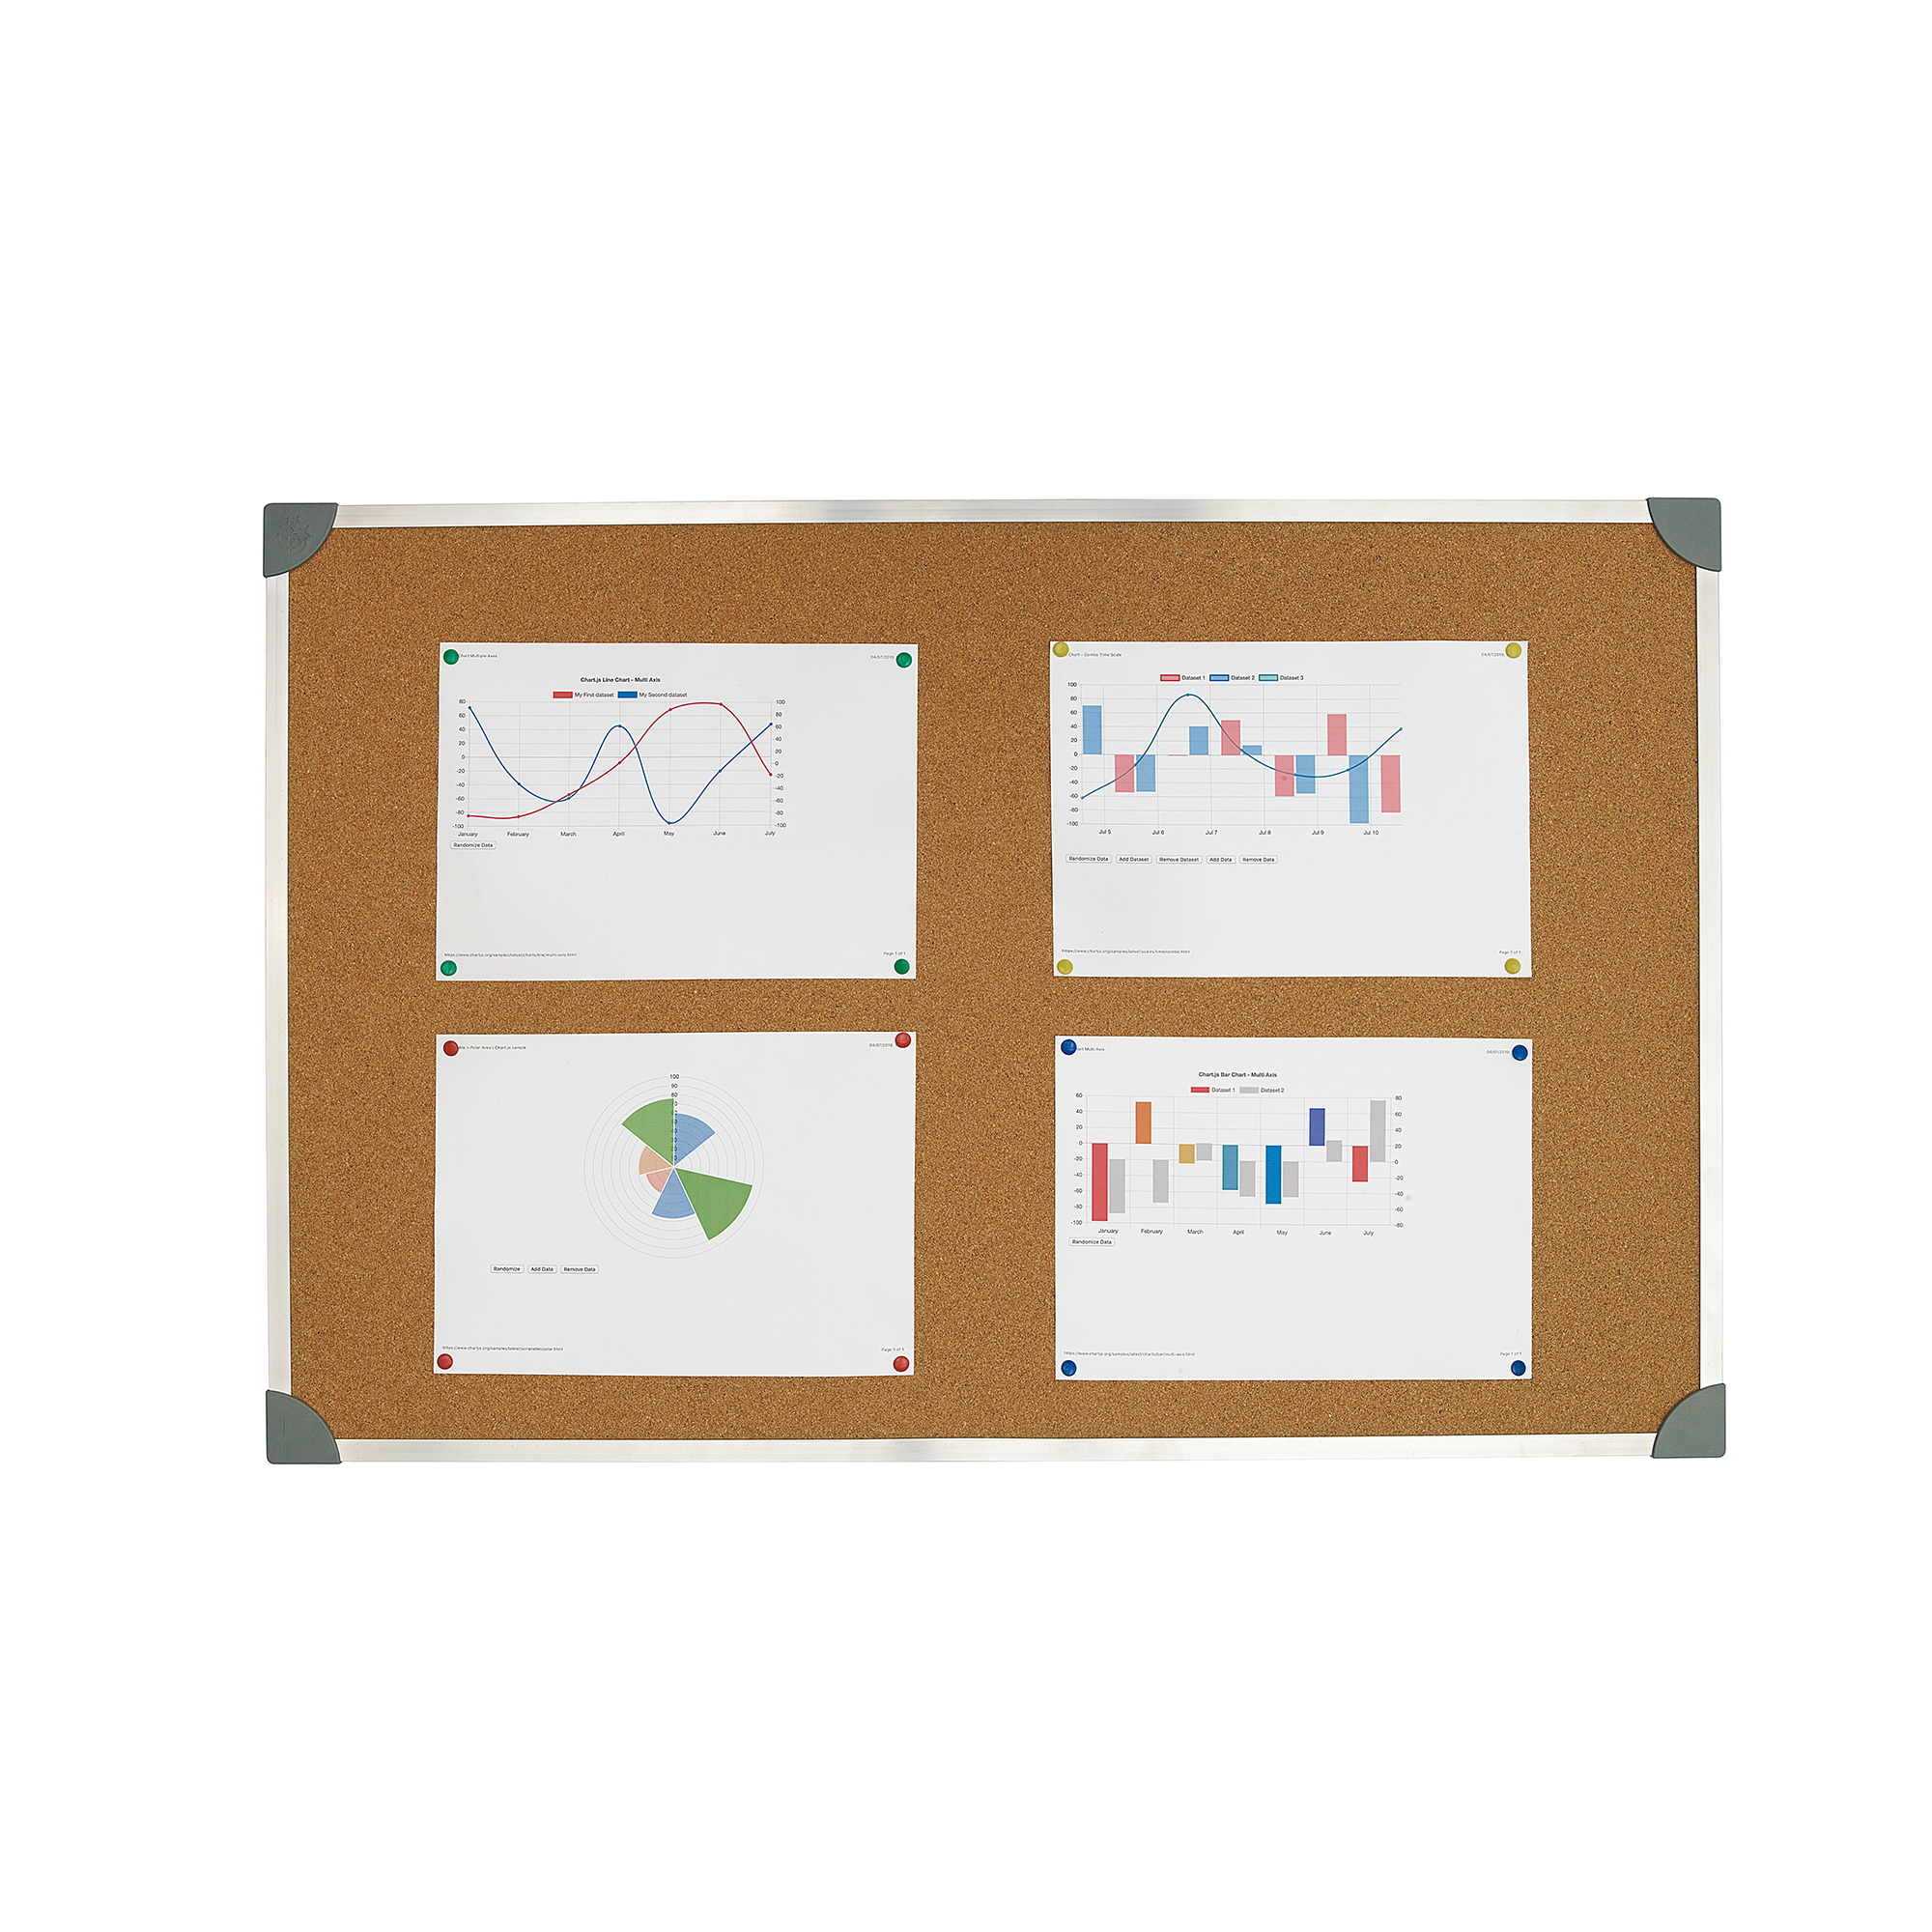 Image for 5 Star Office Cork Board with Wall Fixing Kit Aluminium Frame W900xH600mm